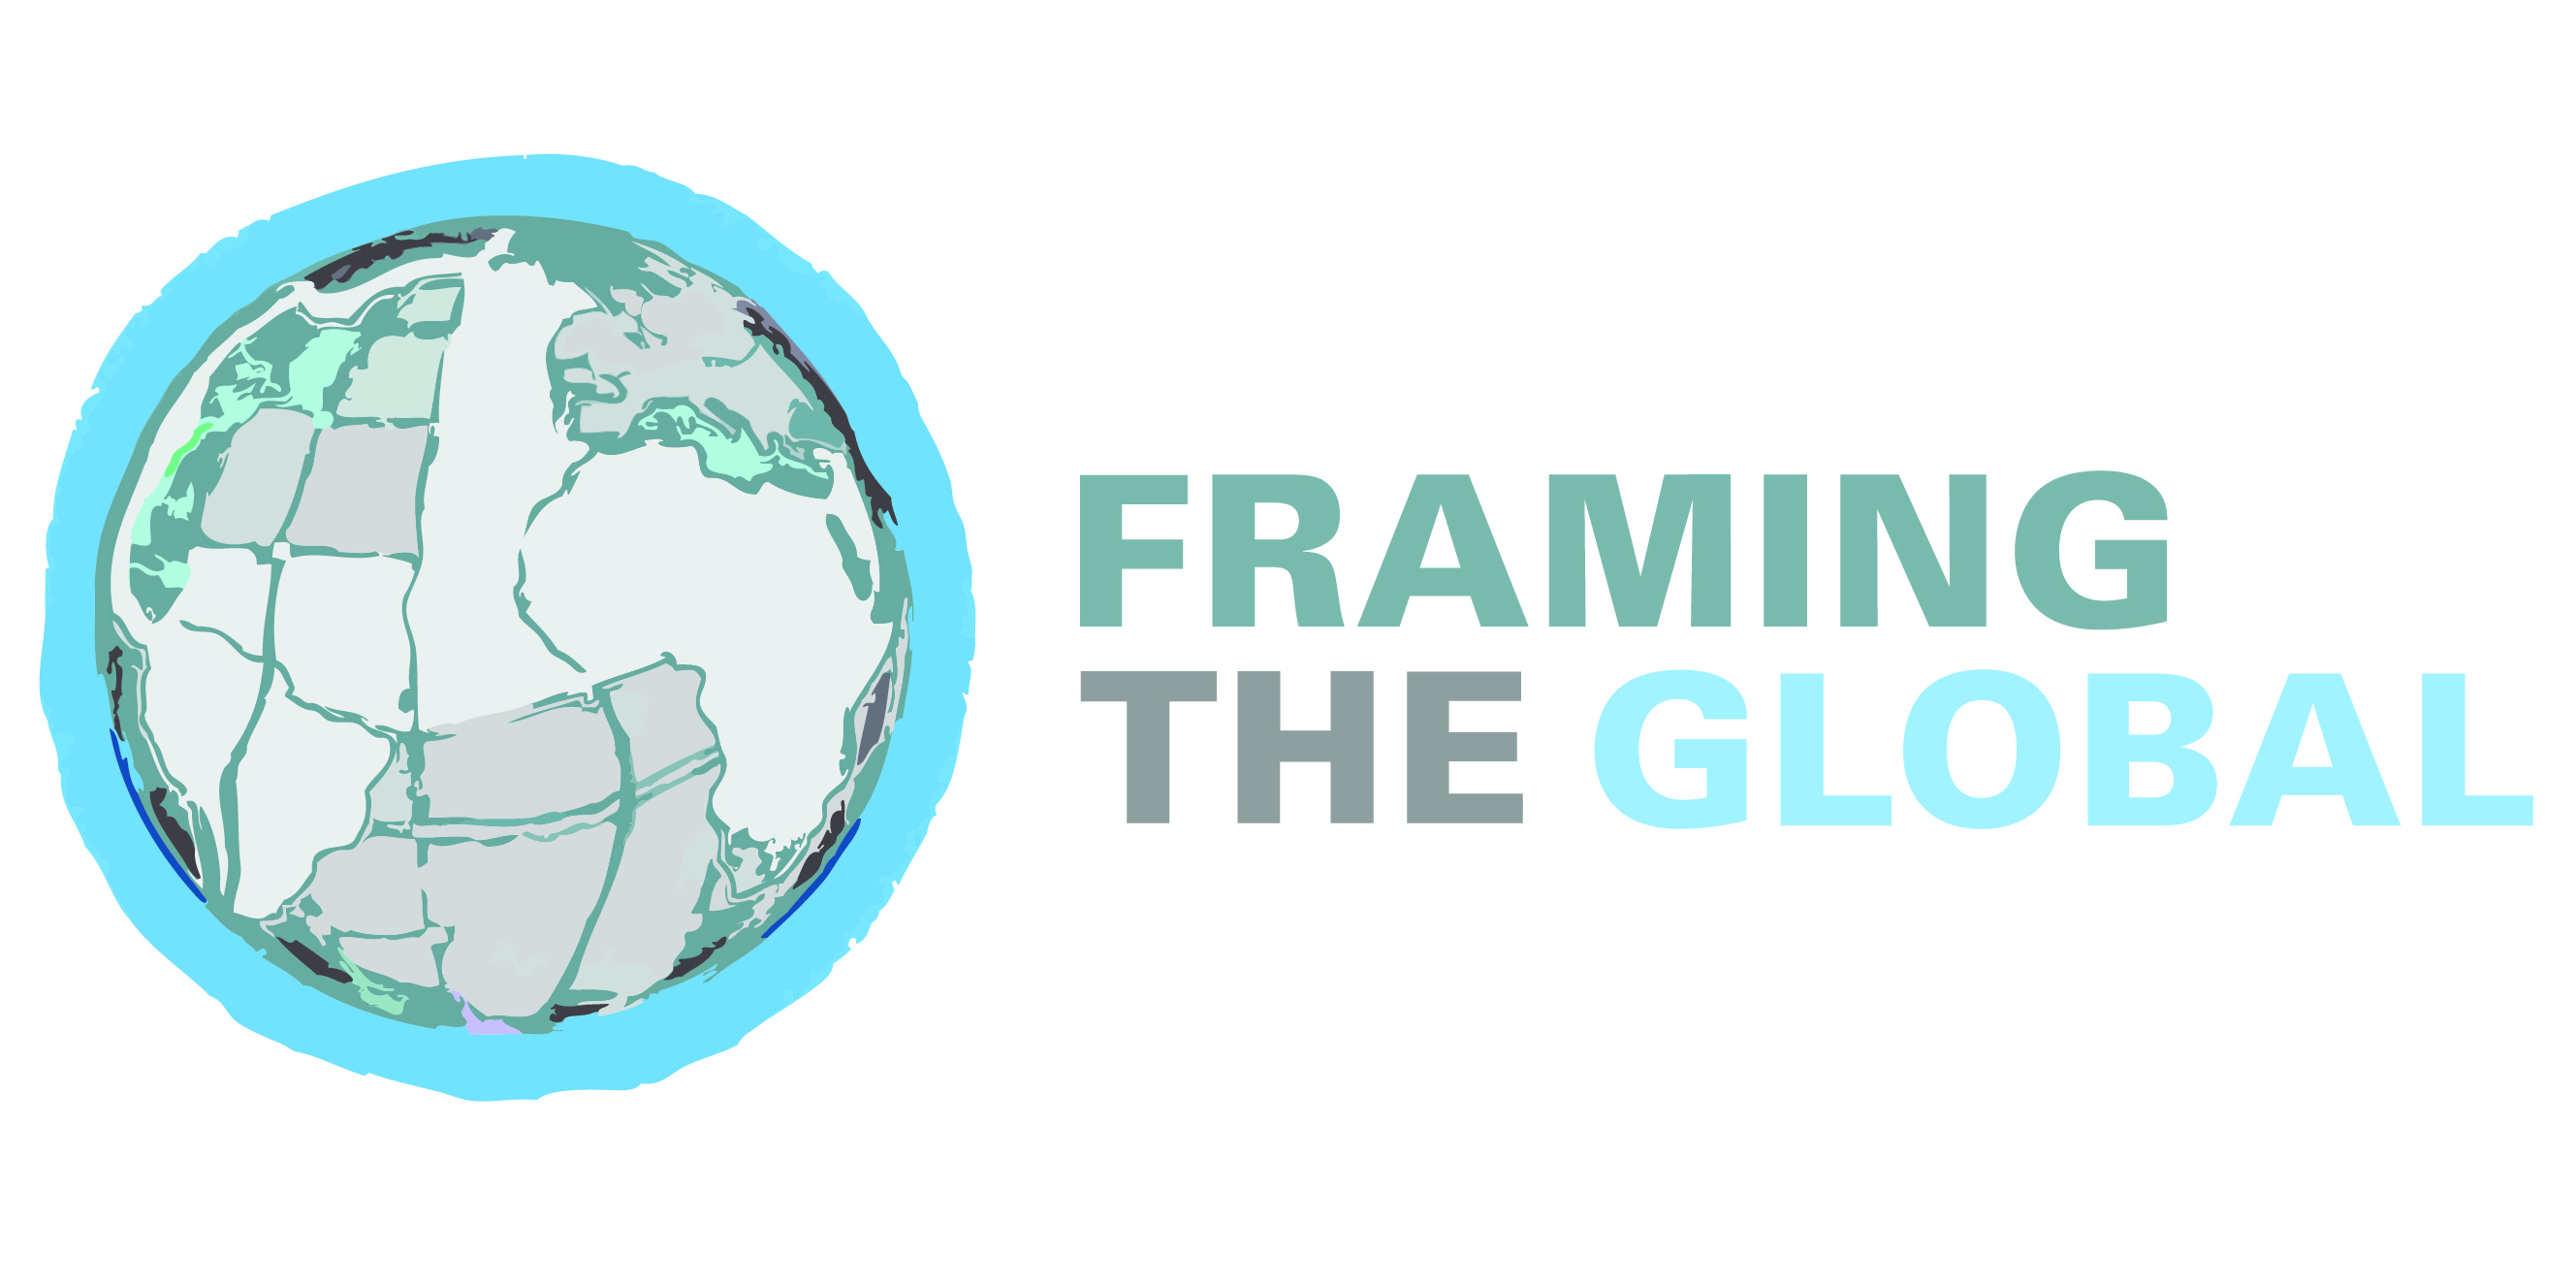 Globe with Framing the Global